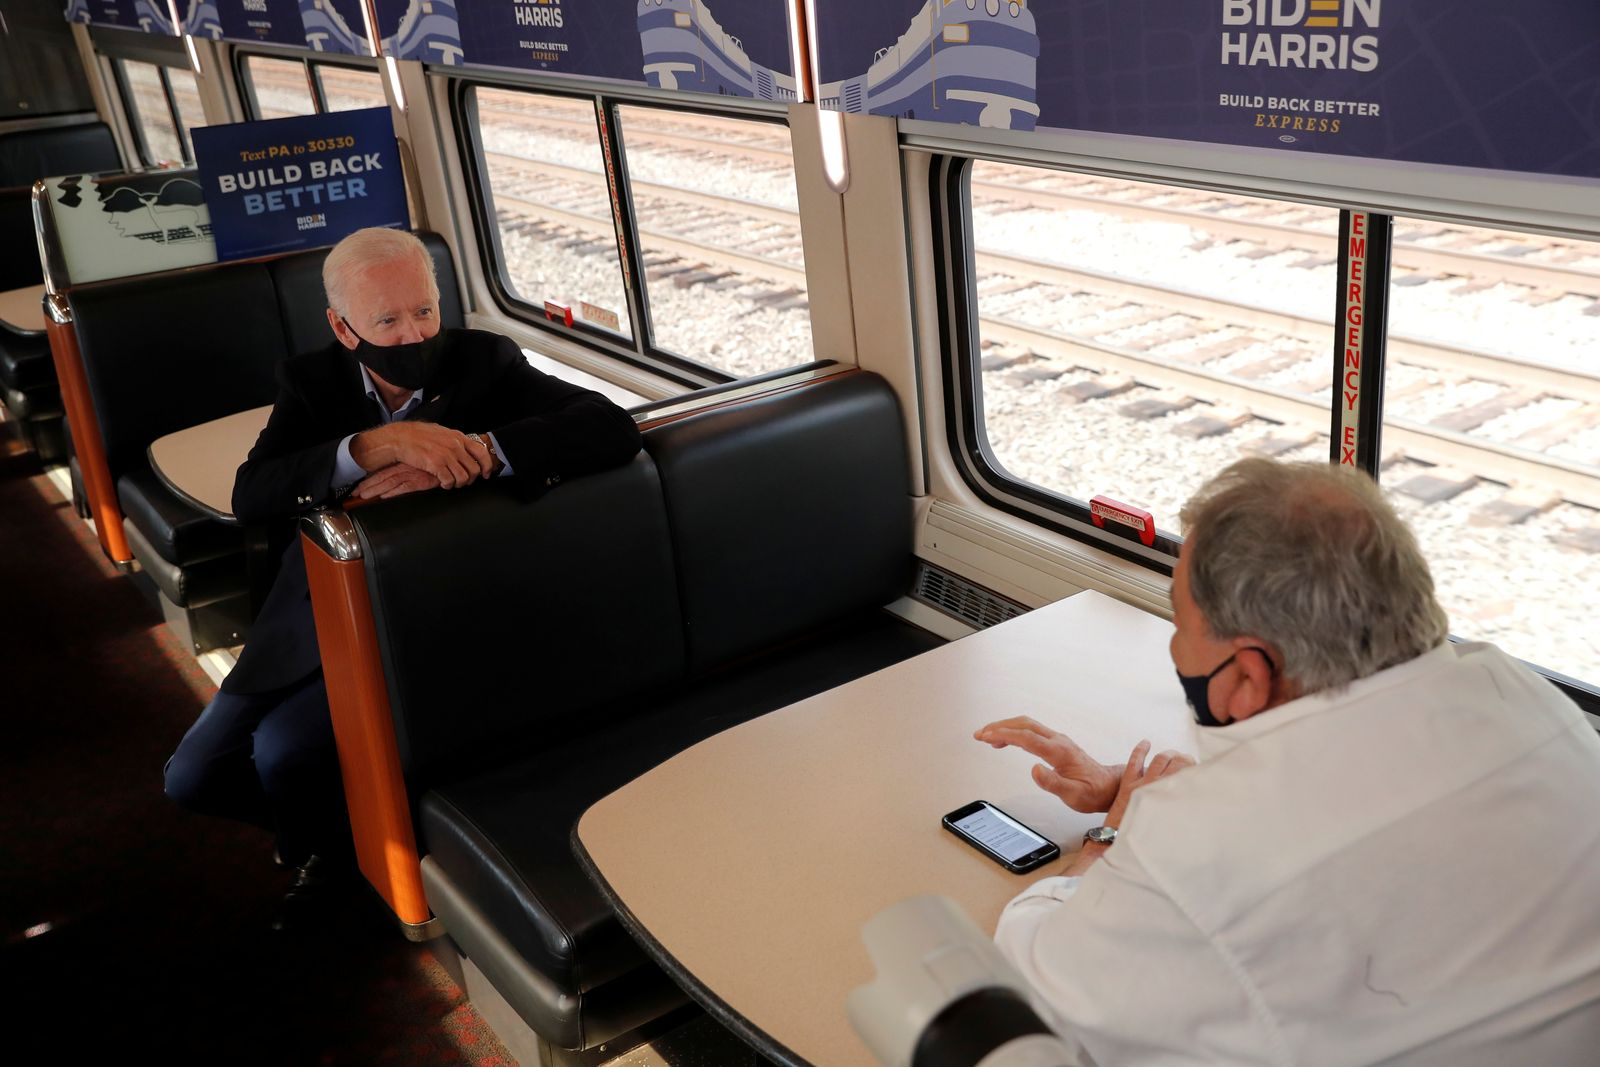 U.S. Democratic presidential candidate and former Vice President Joe Biden campaigns on train tour in Pennsylvania